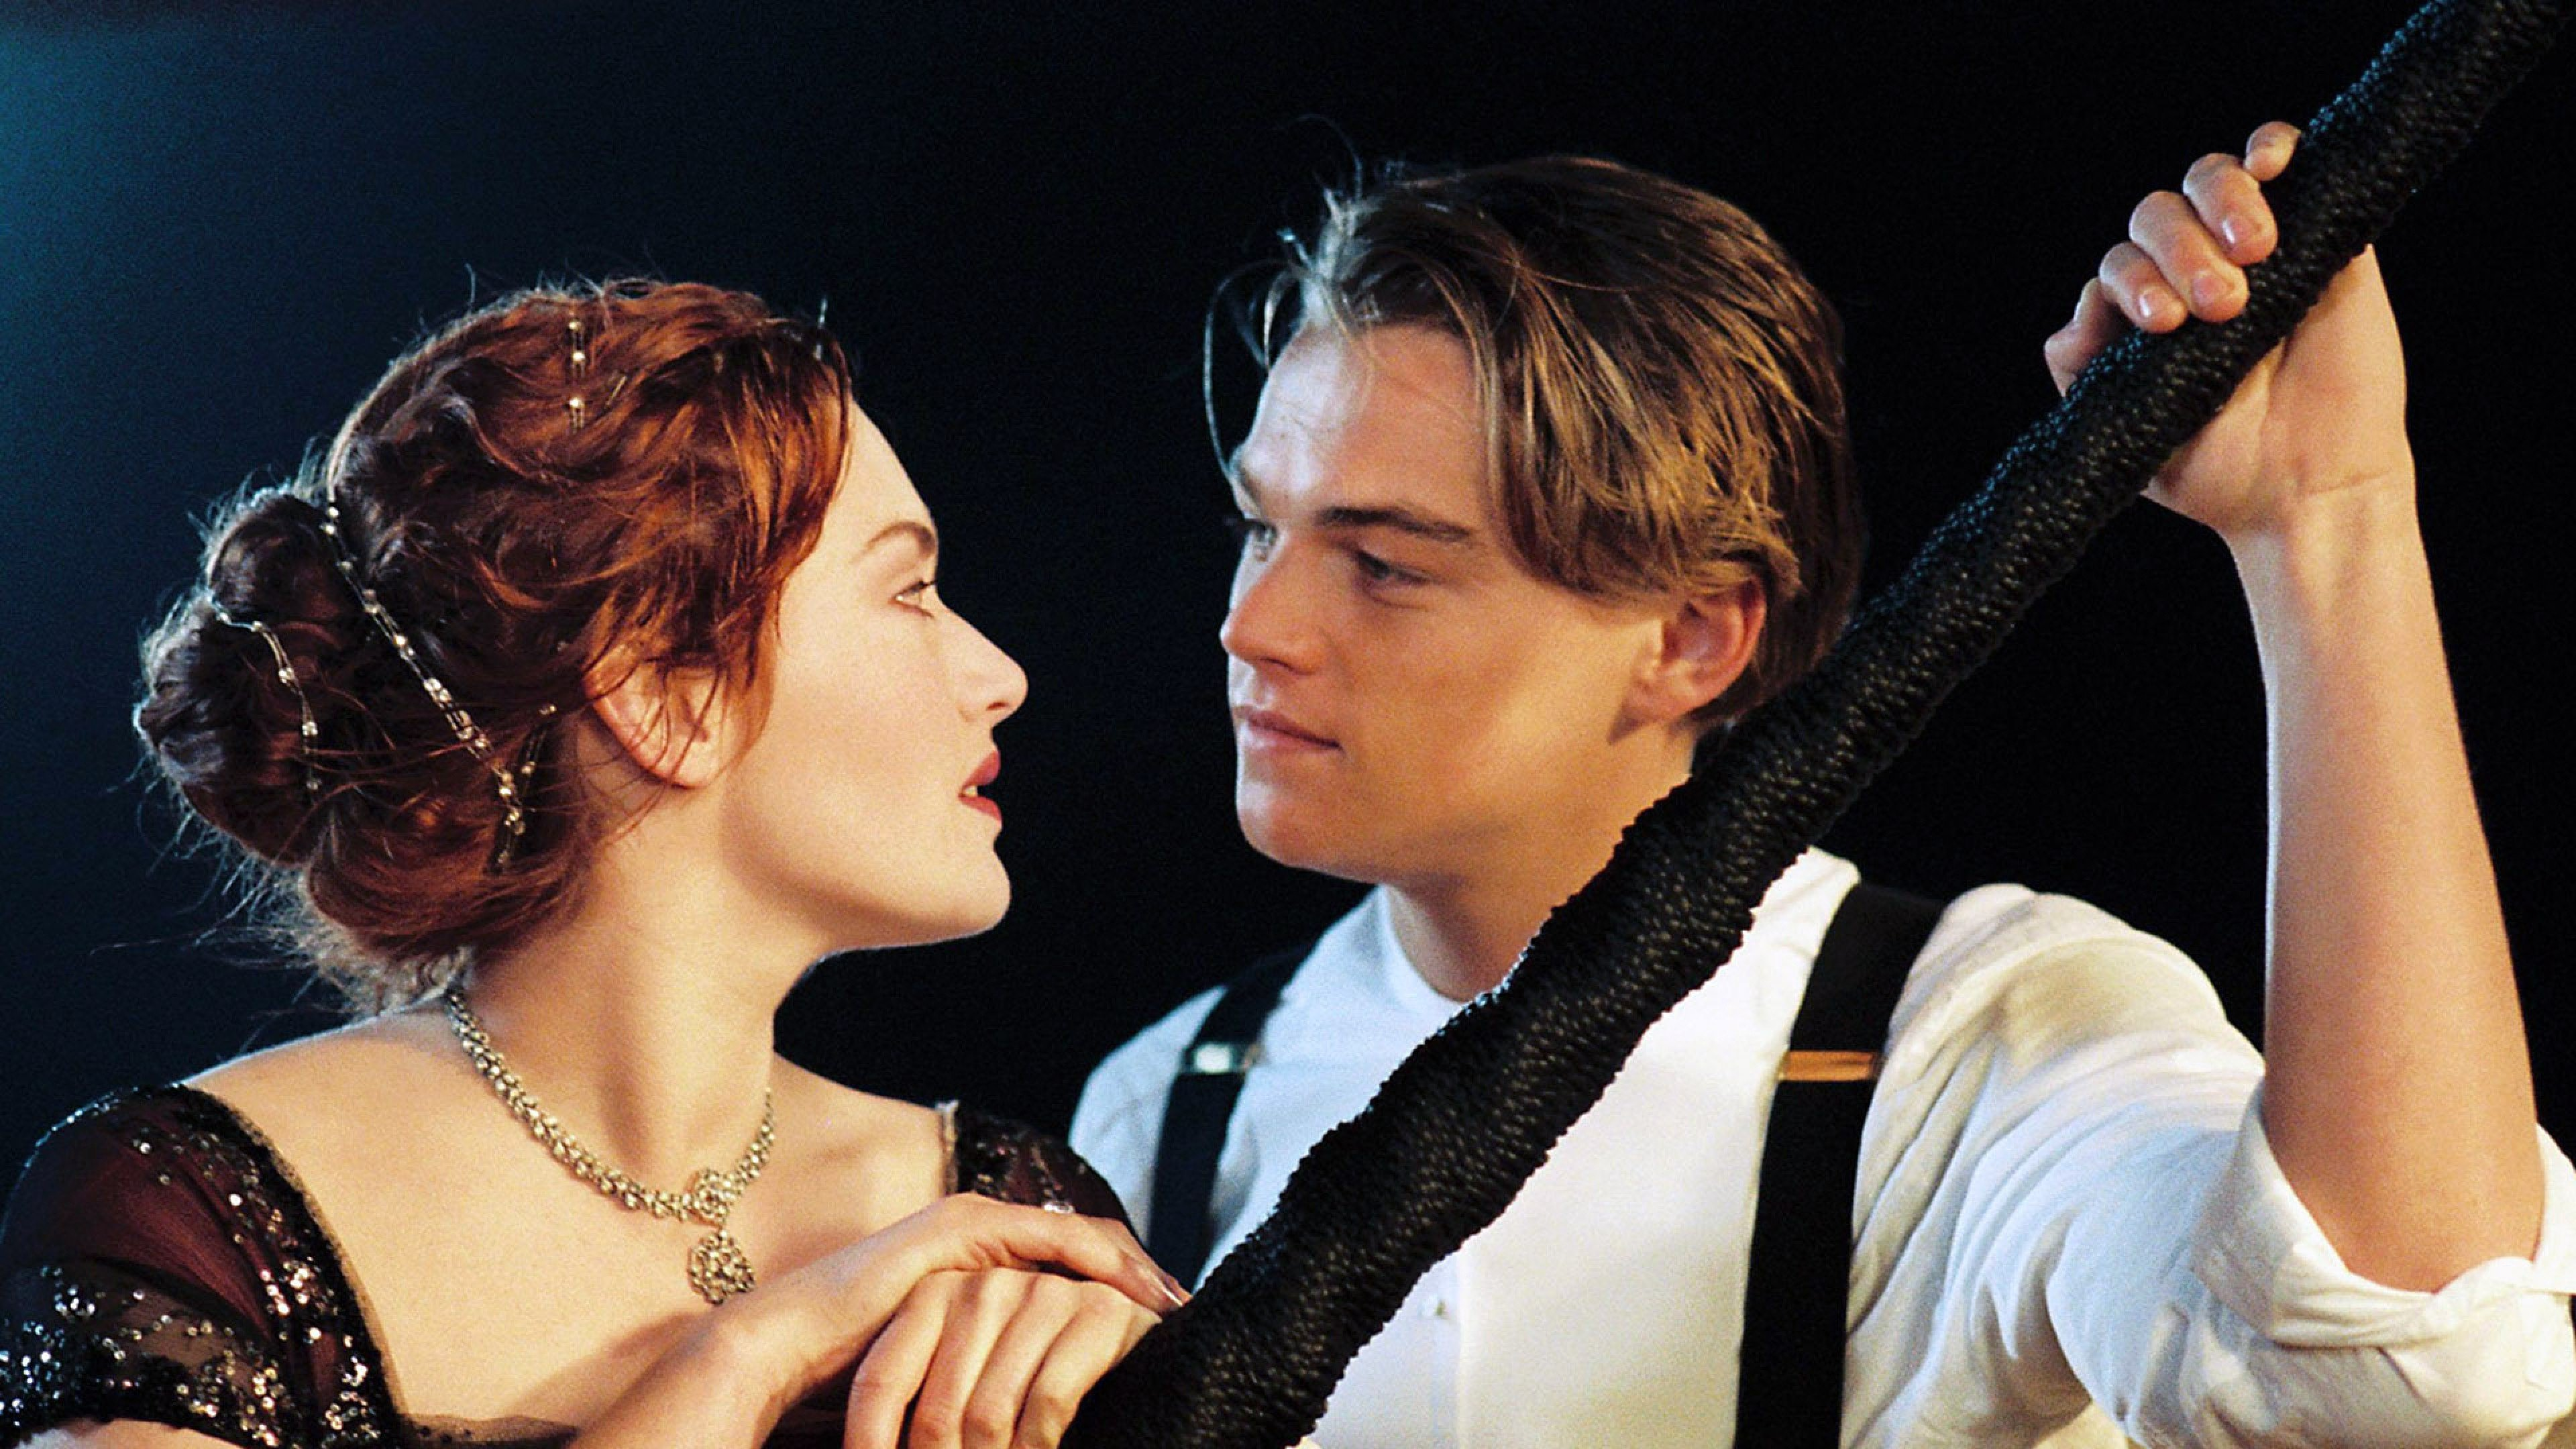 kate winslet and leonardo in titanic movie 1536363273 - Kate Winslet And Leonardo In Titanic Movie - titanic wallpapers, movies wallpapers, love wallpapers, leonardo dicaprio wallpapers, kate winslet wallpapers, girls wallpapers, couple wallpapers, celebrities wallpapers